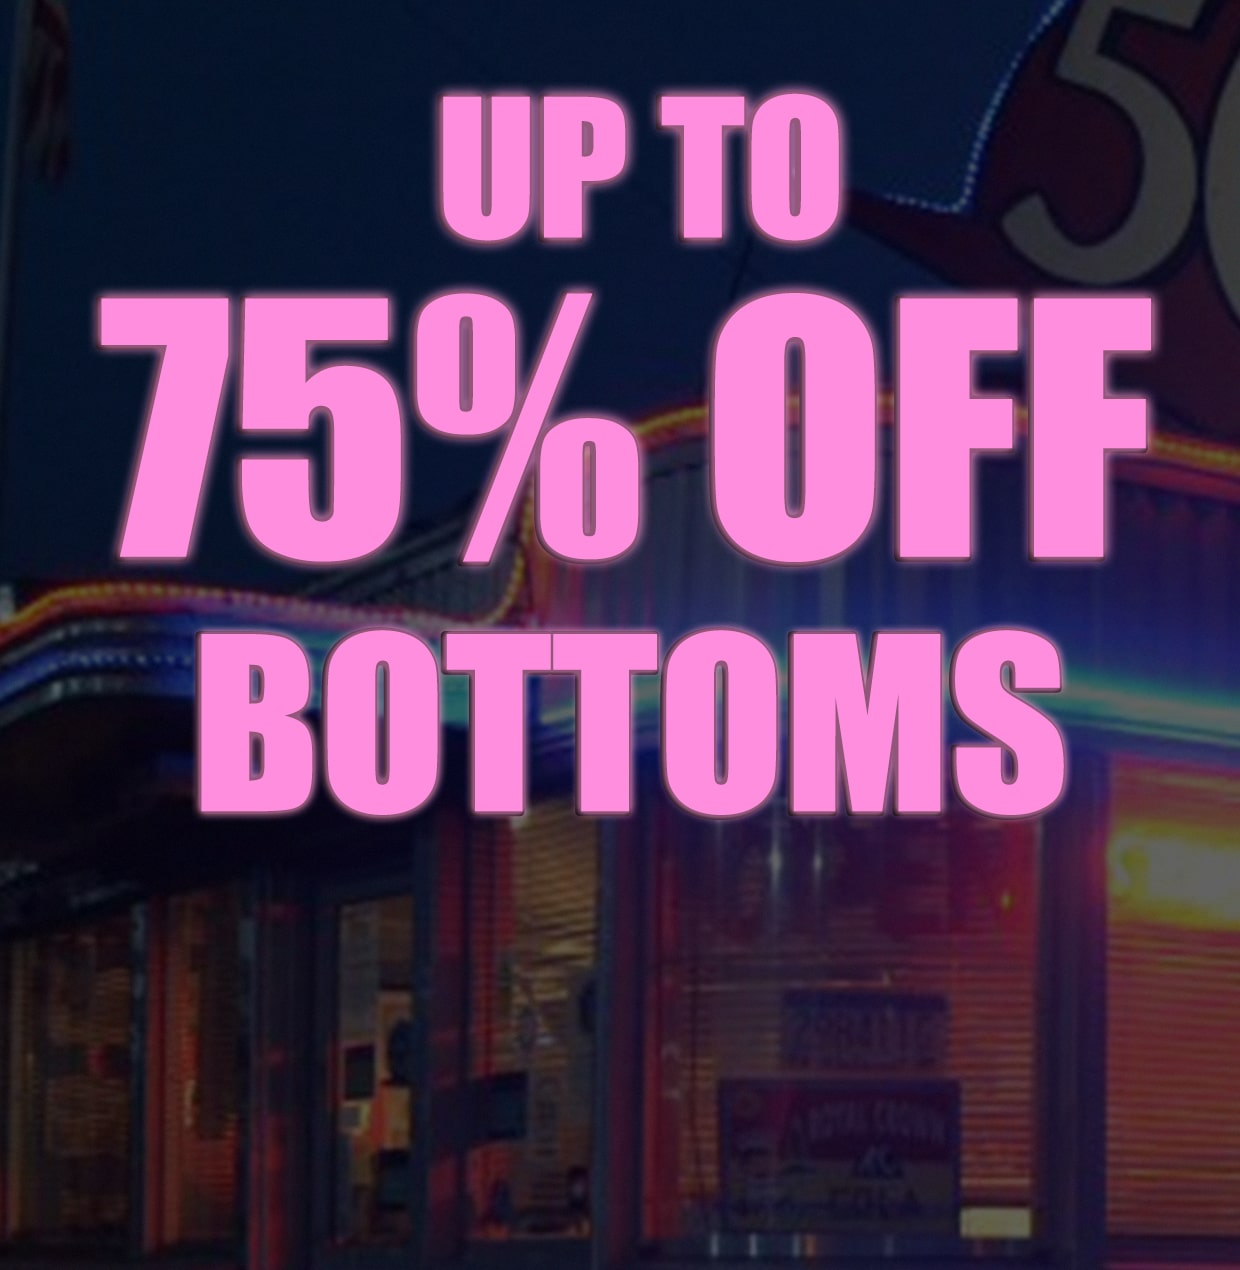 upto 70% off bottoms